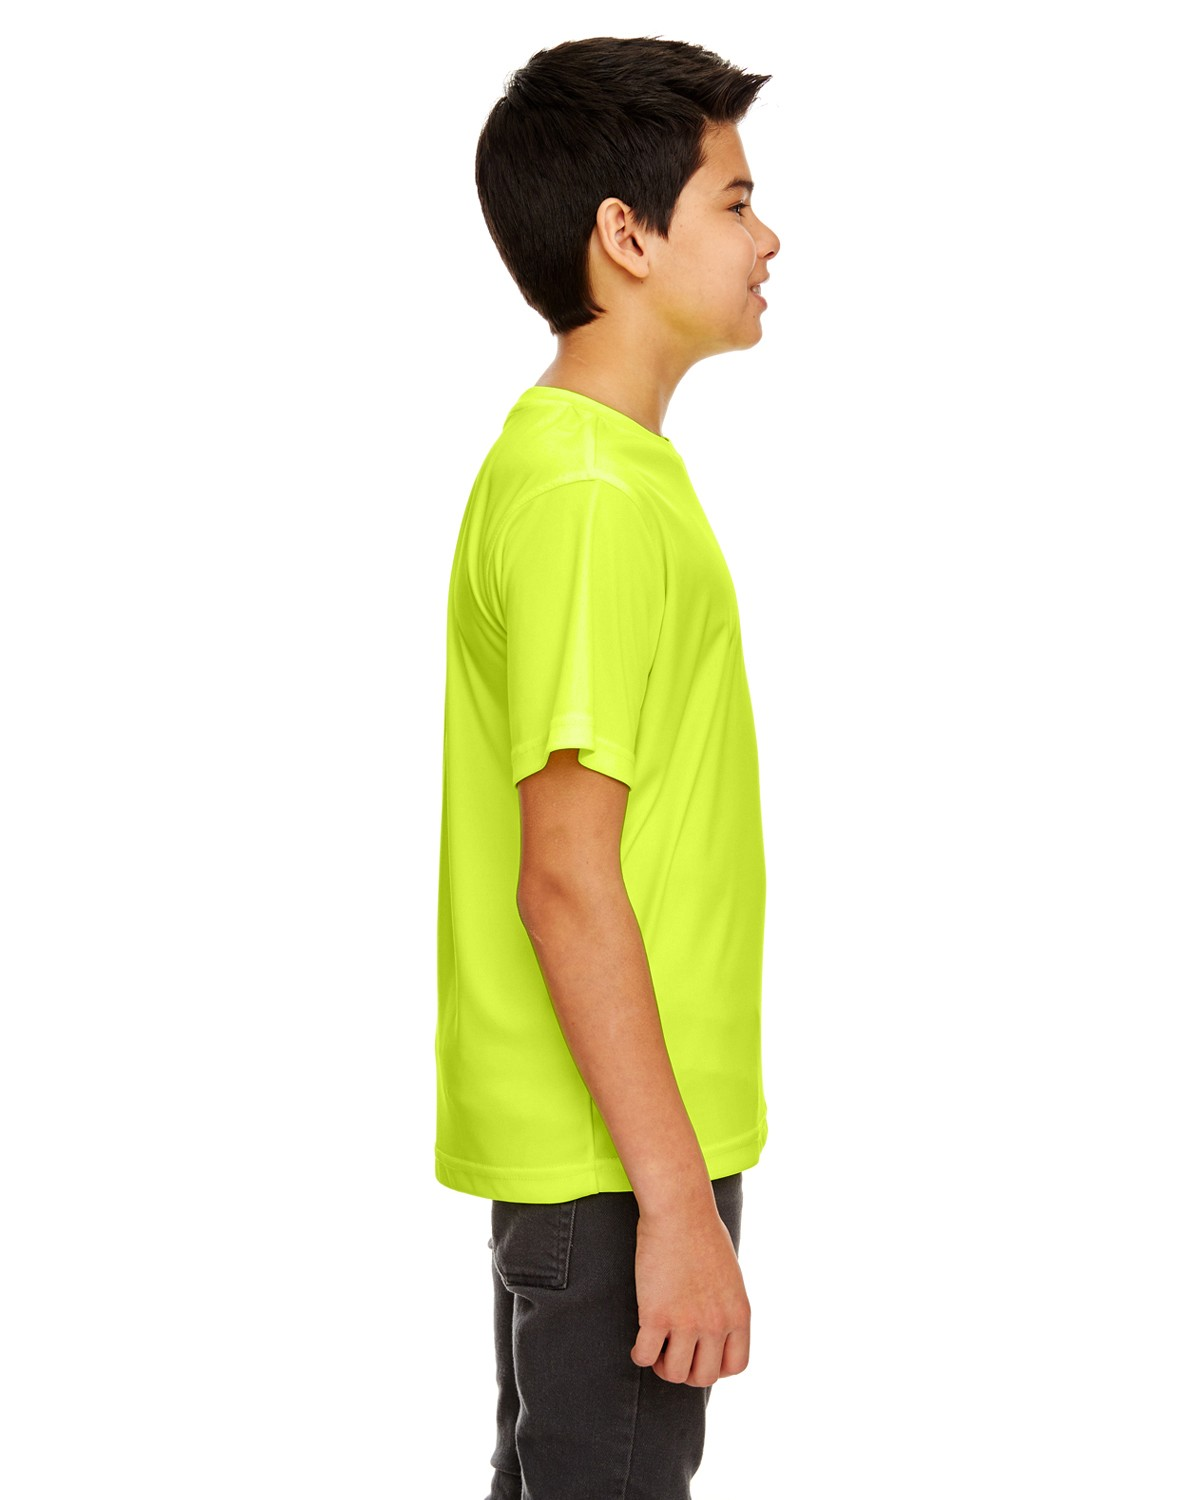 8420Y UltraClub BRIGHT YELLOW